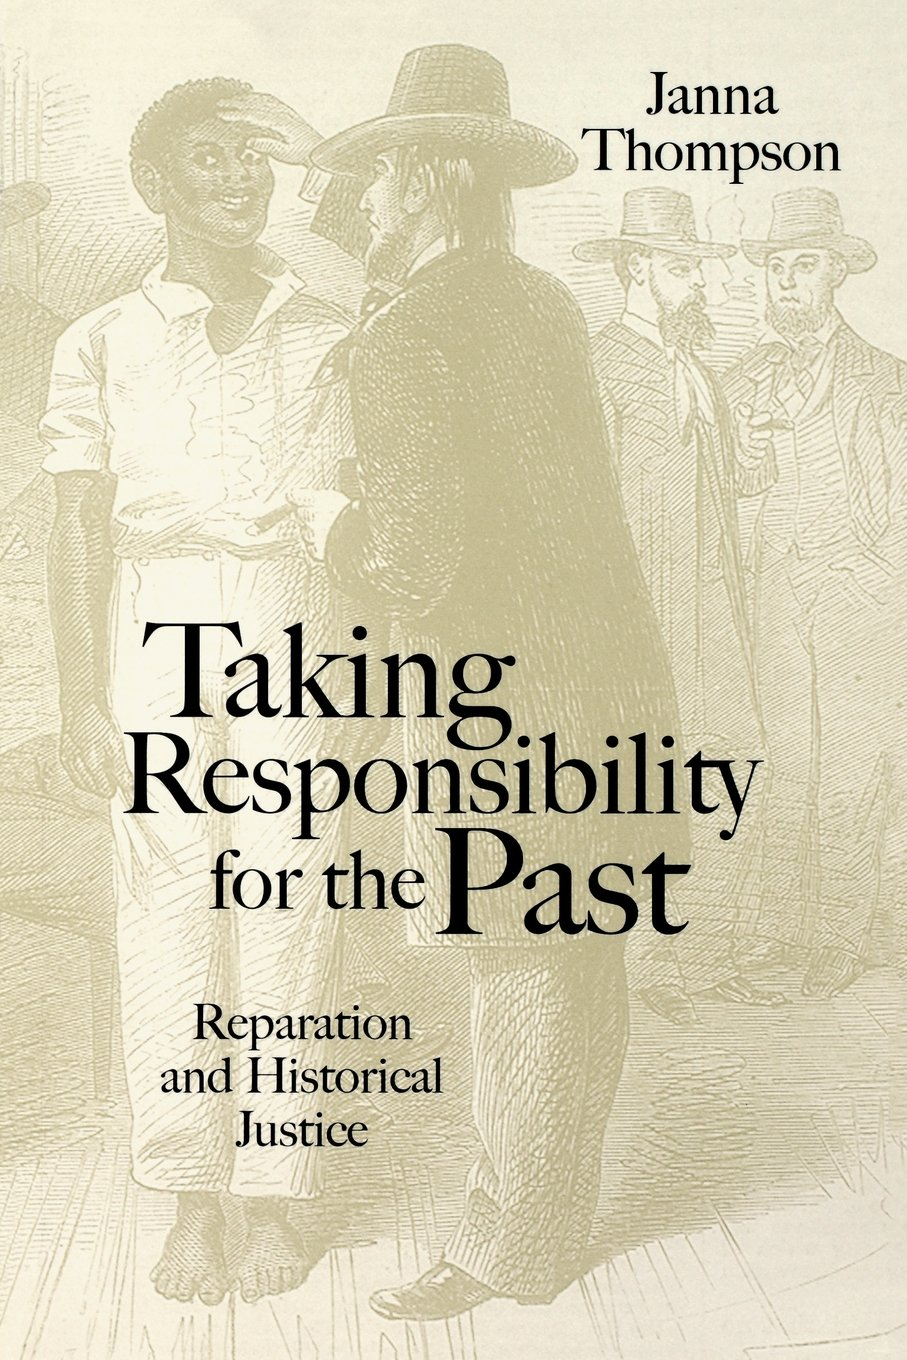 Image for Taking Responsibility for the Past: Reparation and Historical Injustice